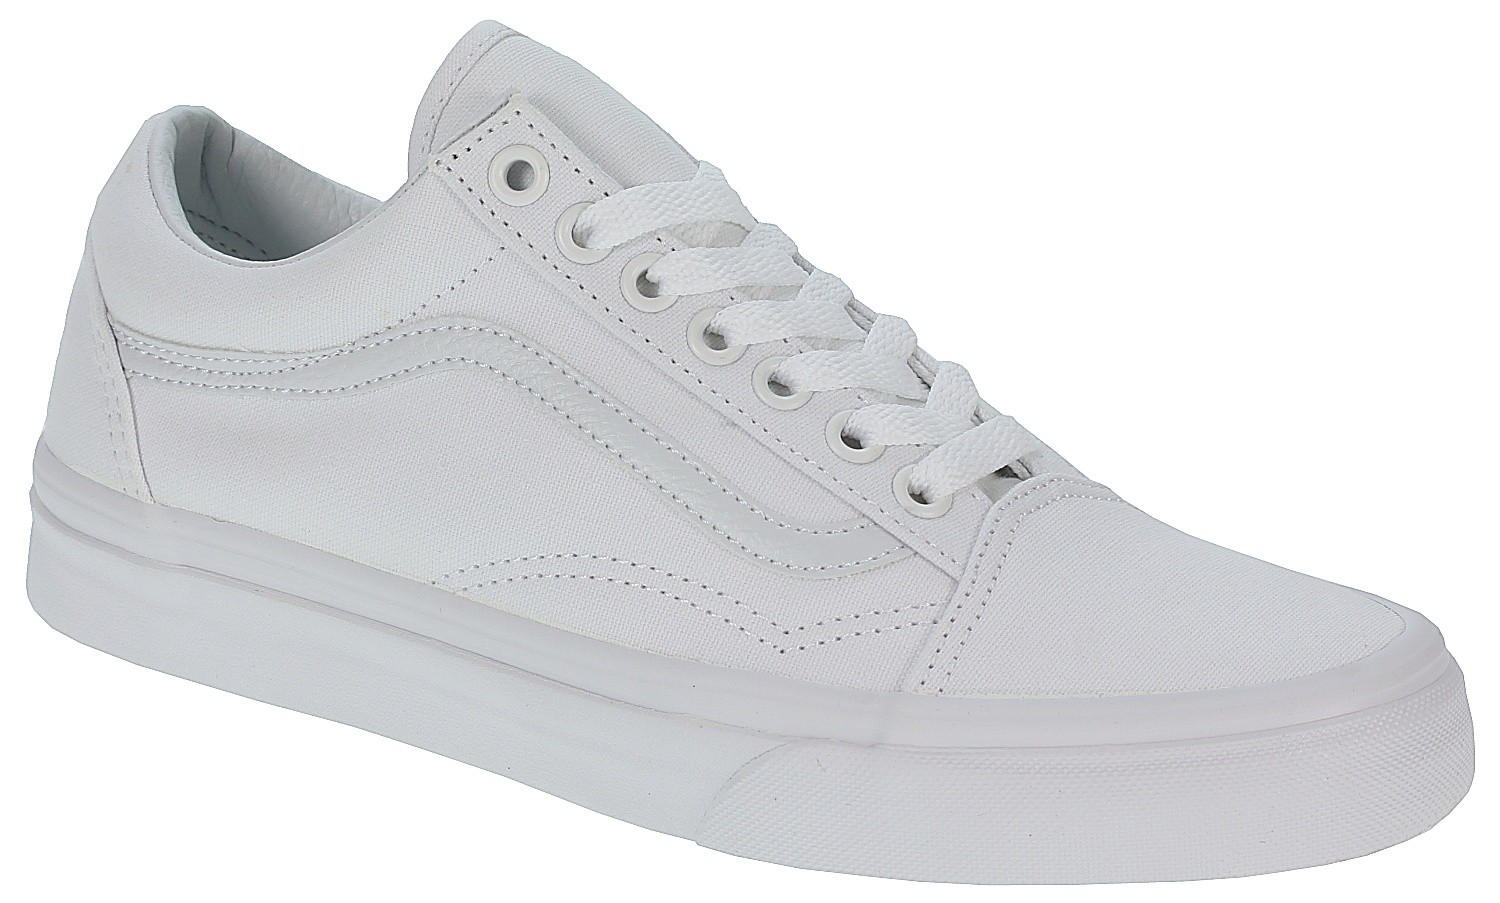 White At Vans Papers True Chaussures Old Wx4eysqb Skool z8axEf